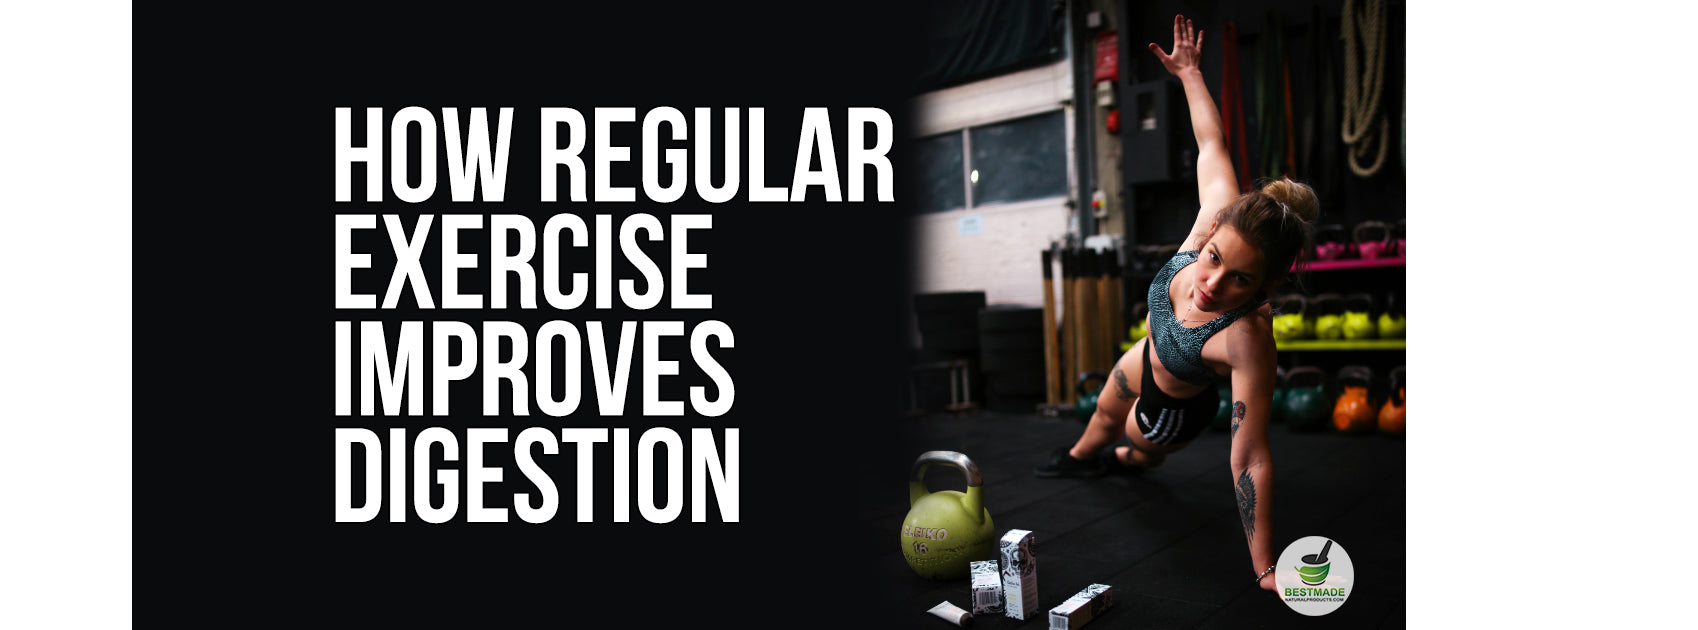 How Regular Exercise Improves Digestion